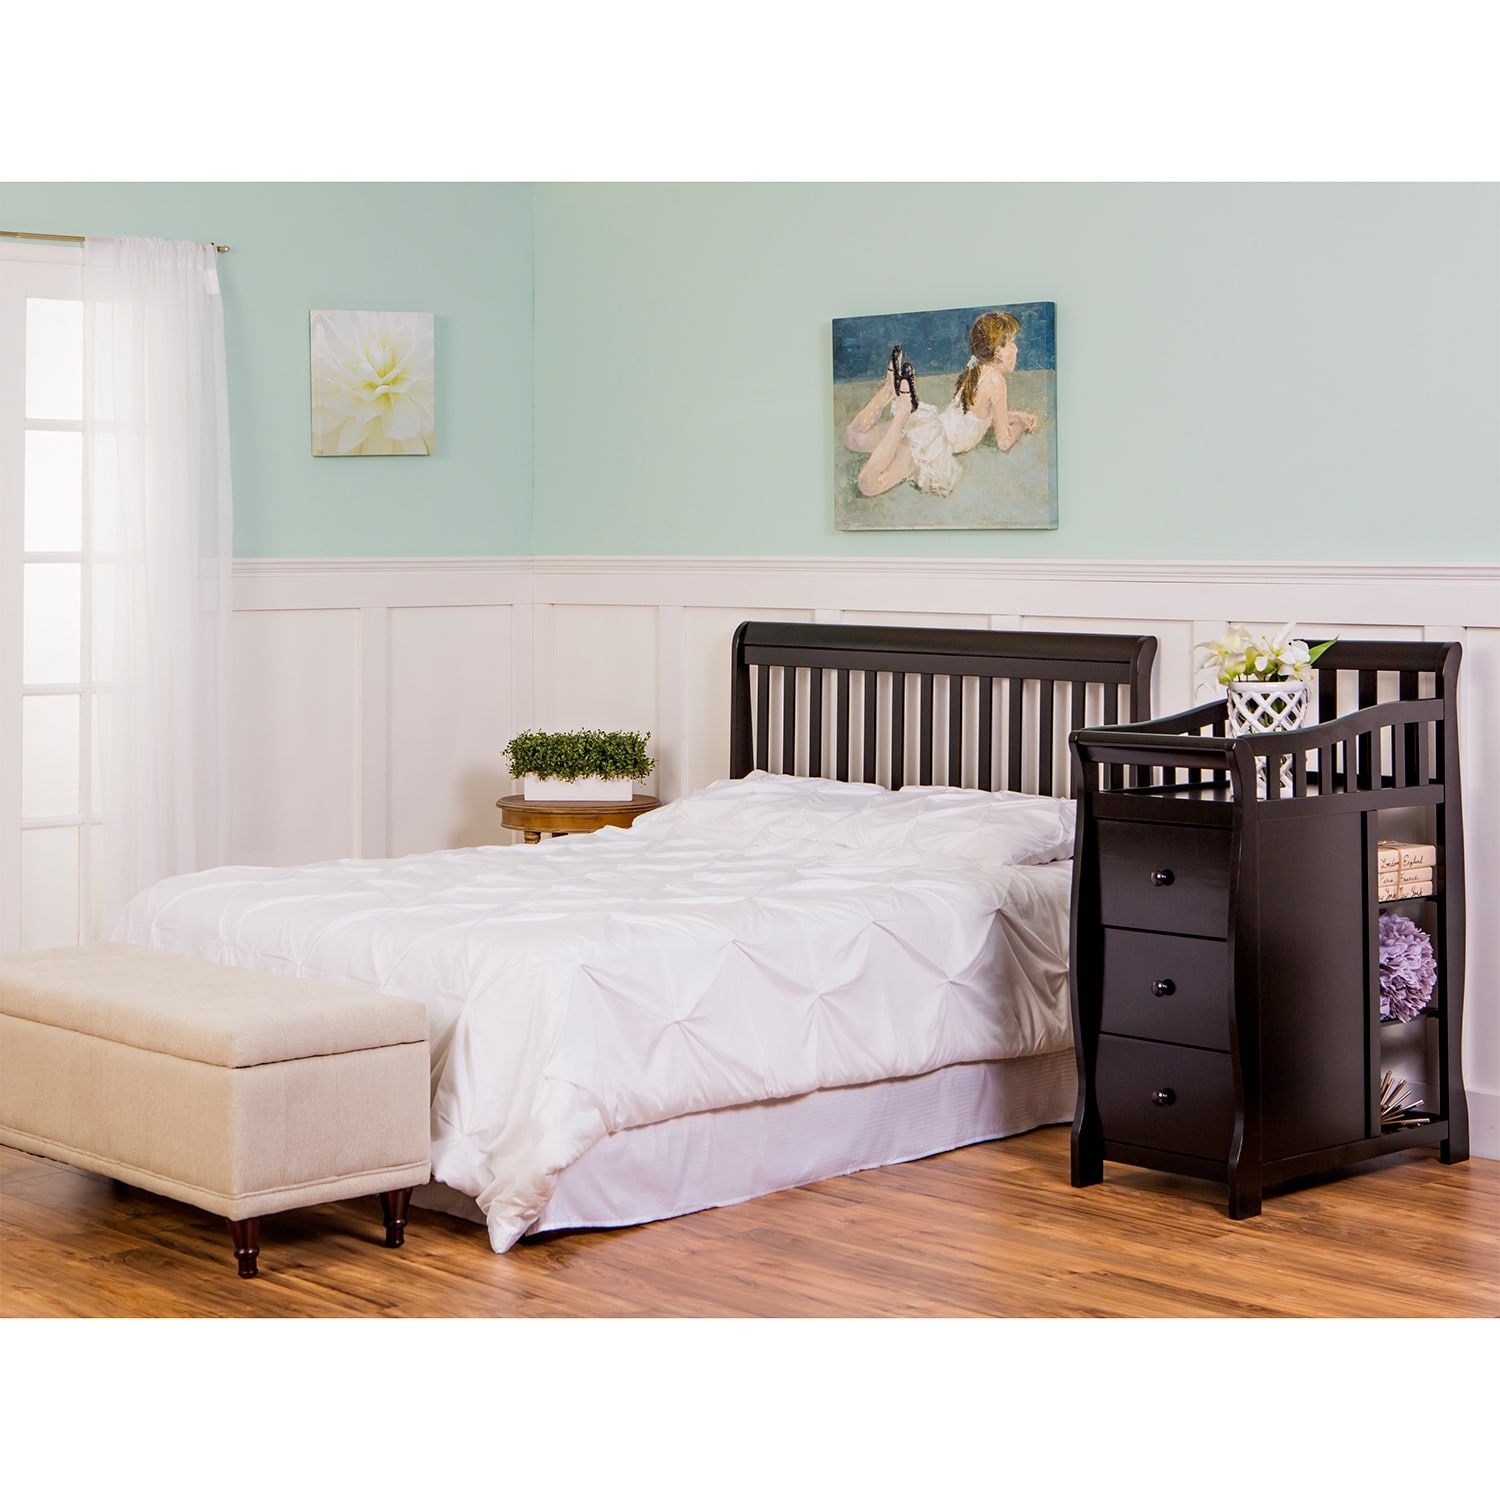 Dream On Me Brody 5in1 Convertible Crib with Changer